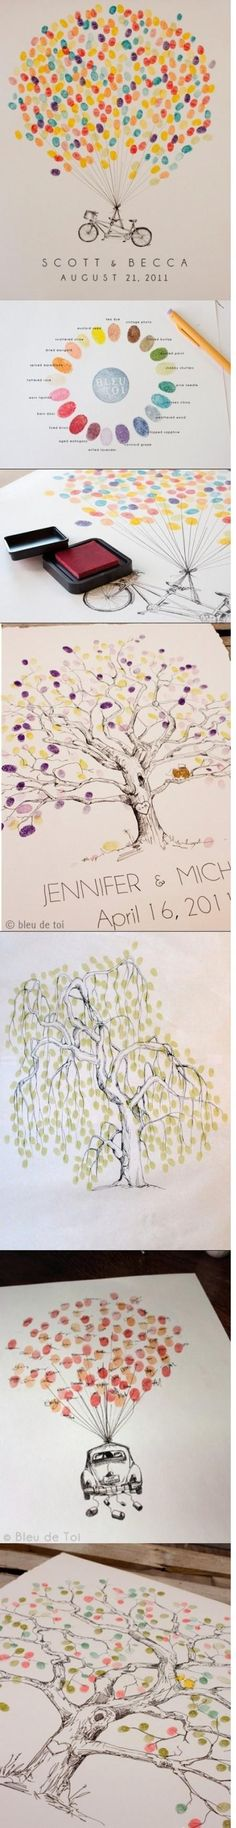 Fingerprint ideas. wedding guest books / family reunions. So cute!!